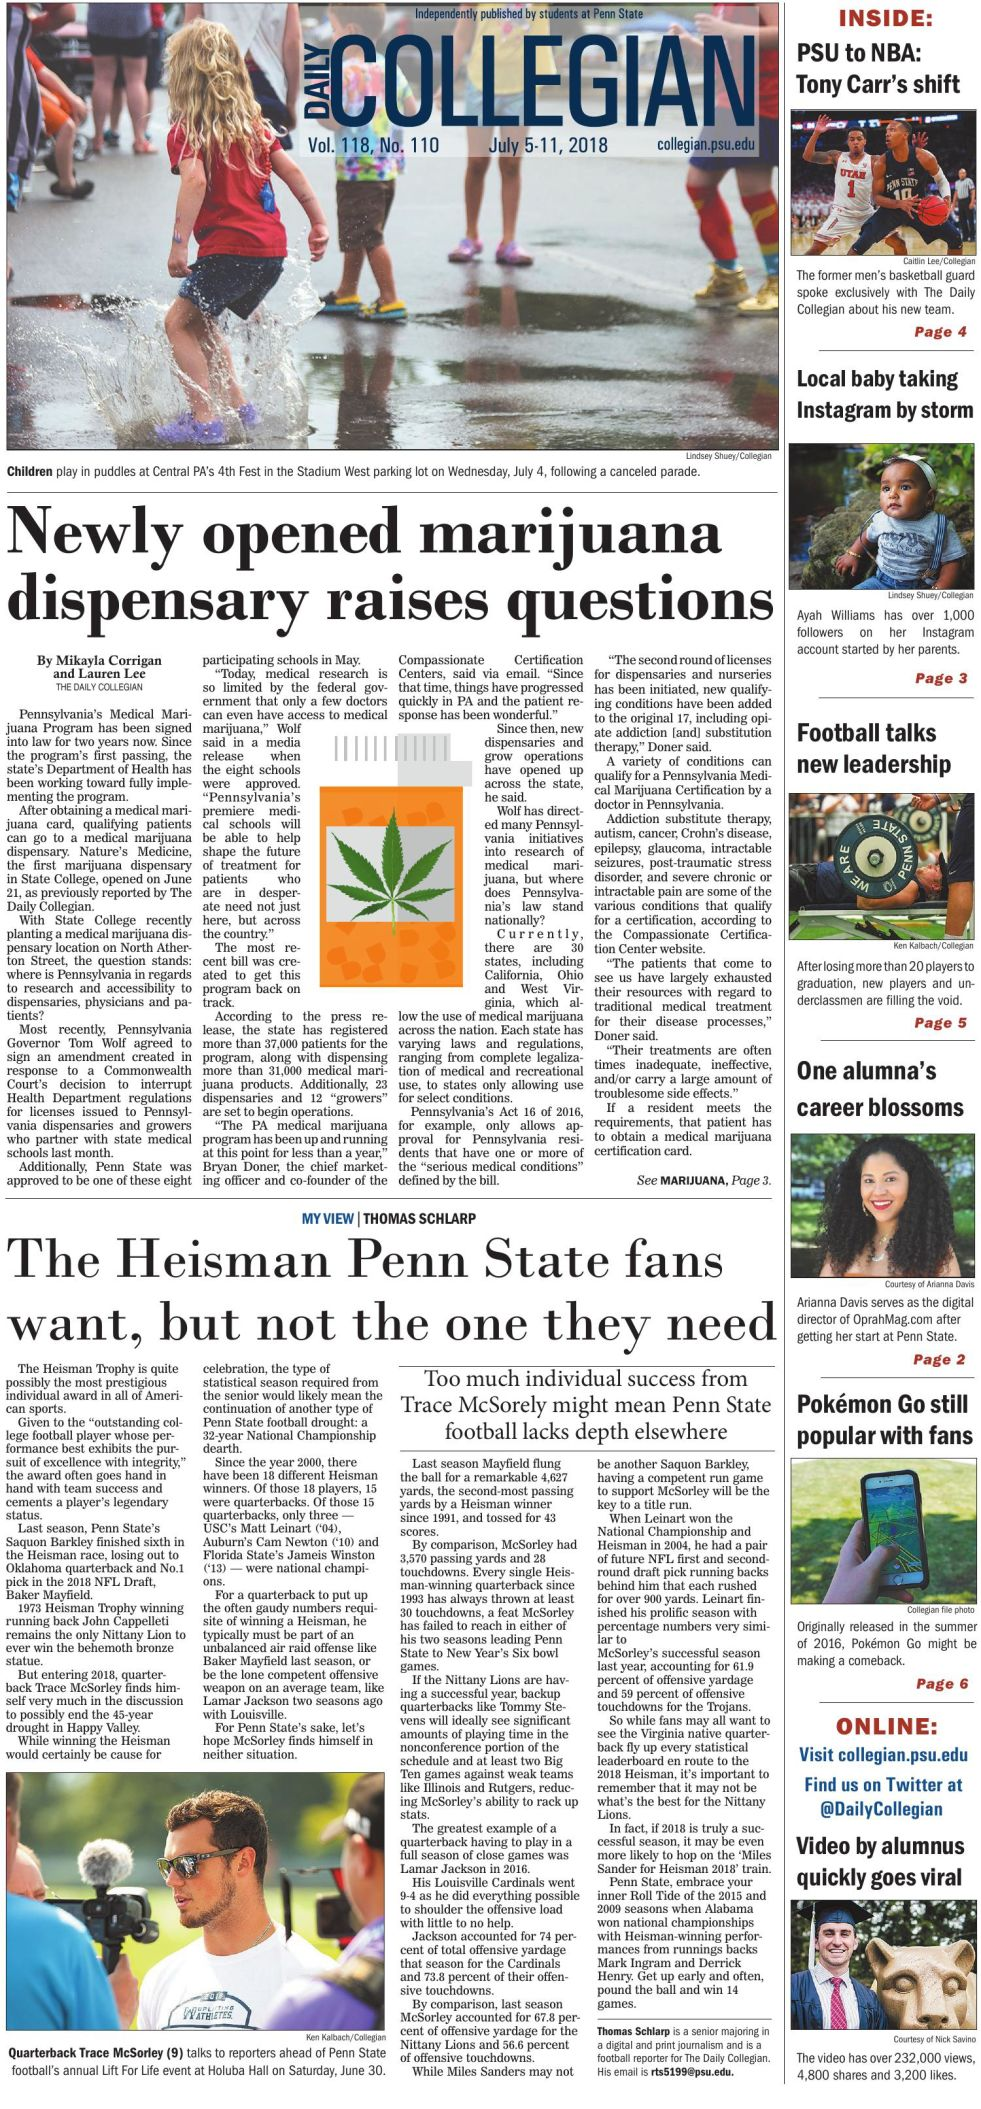 The Daily Collegian for July 5, 2018